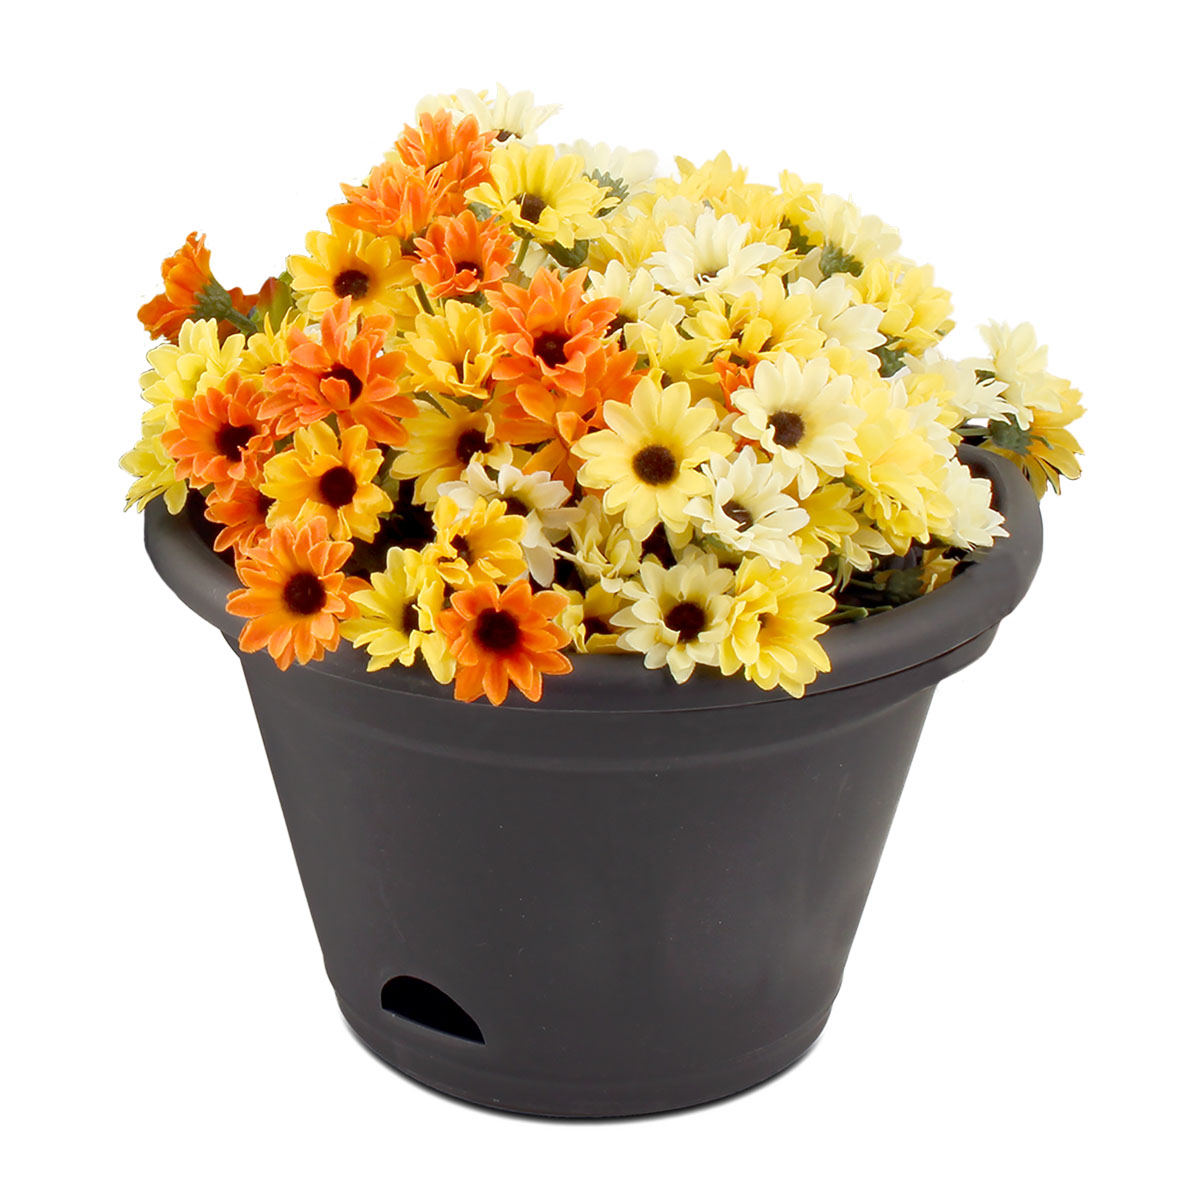 18441 Garden Up Terrace Pot Charcoal with flowers